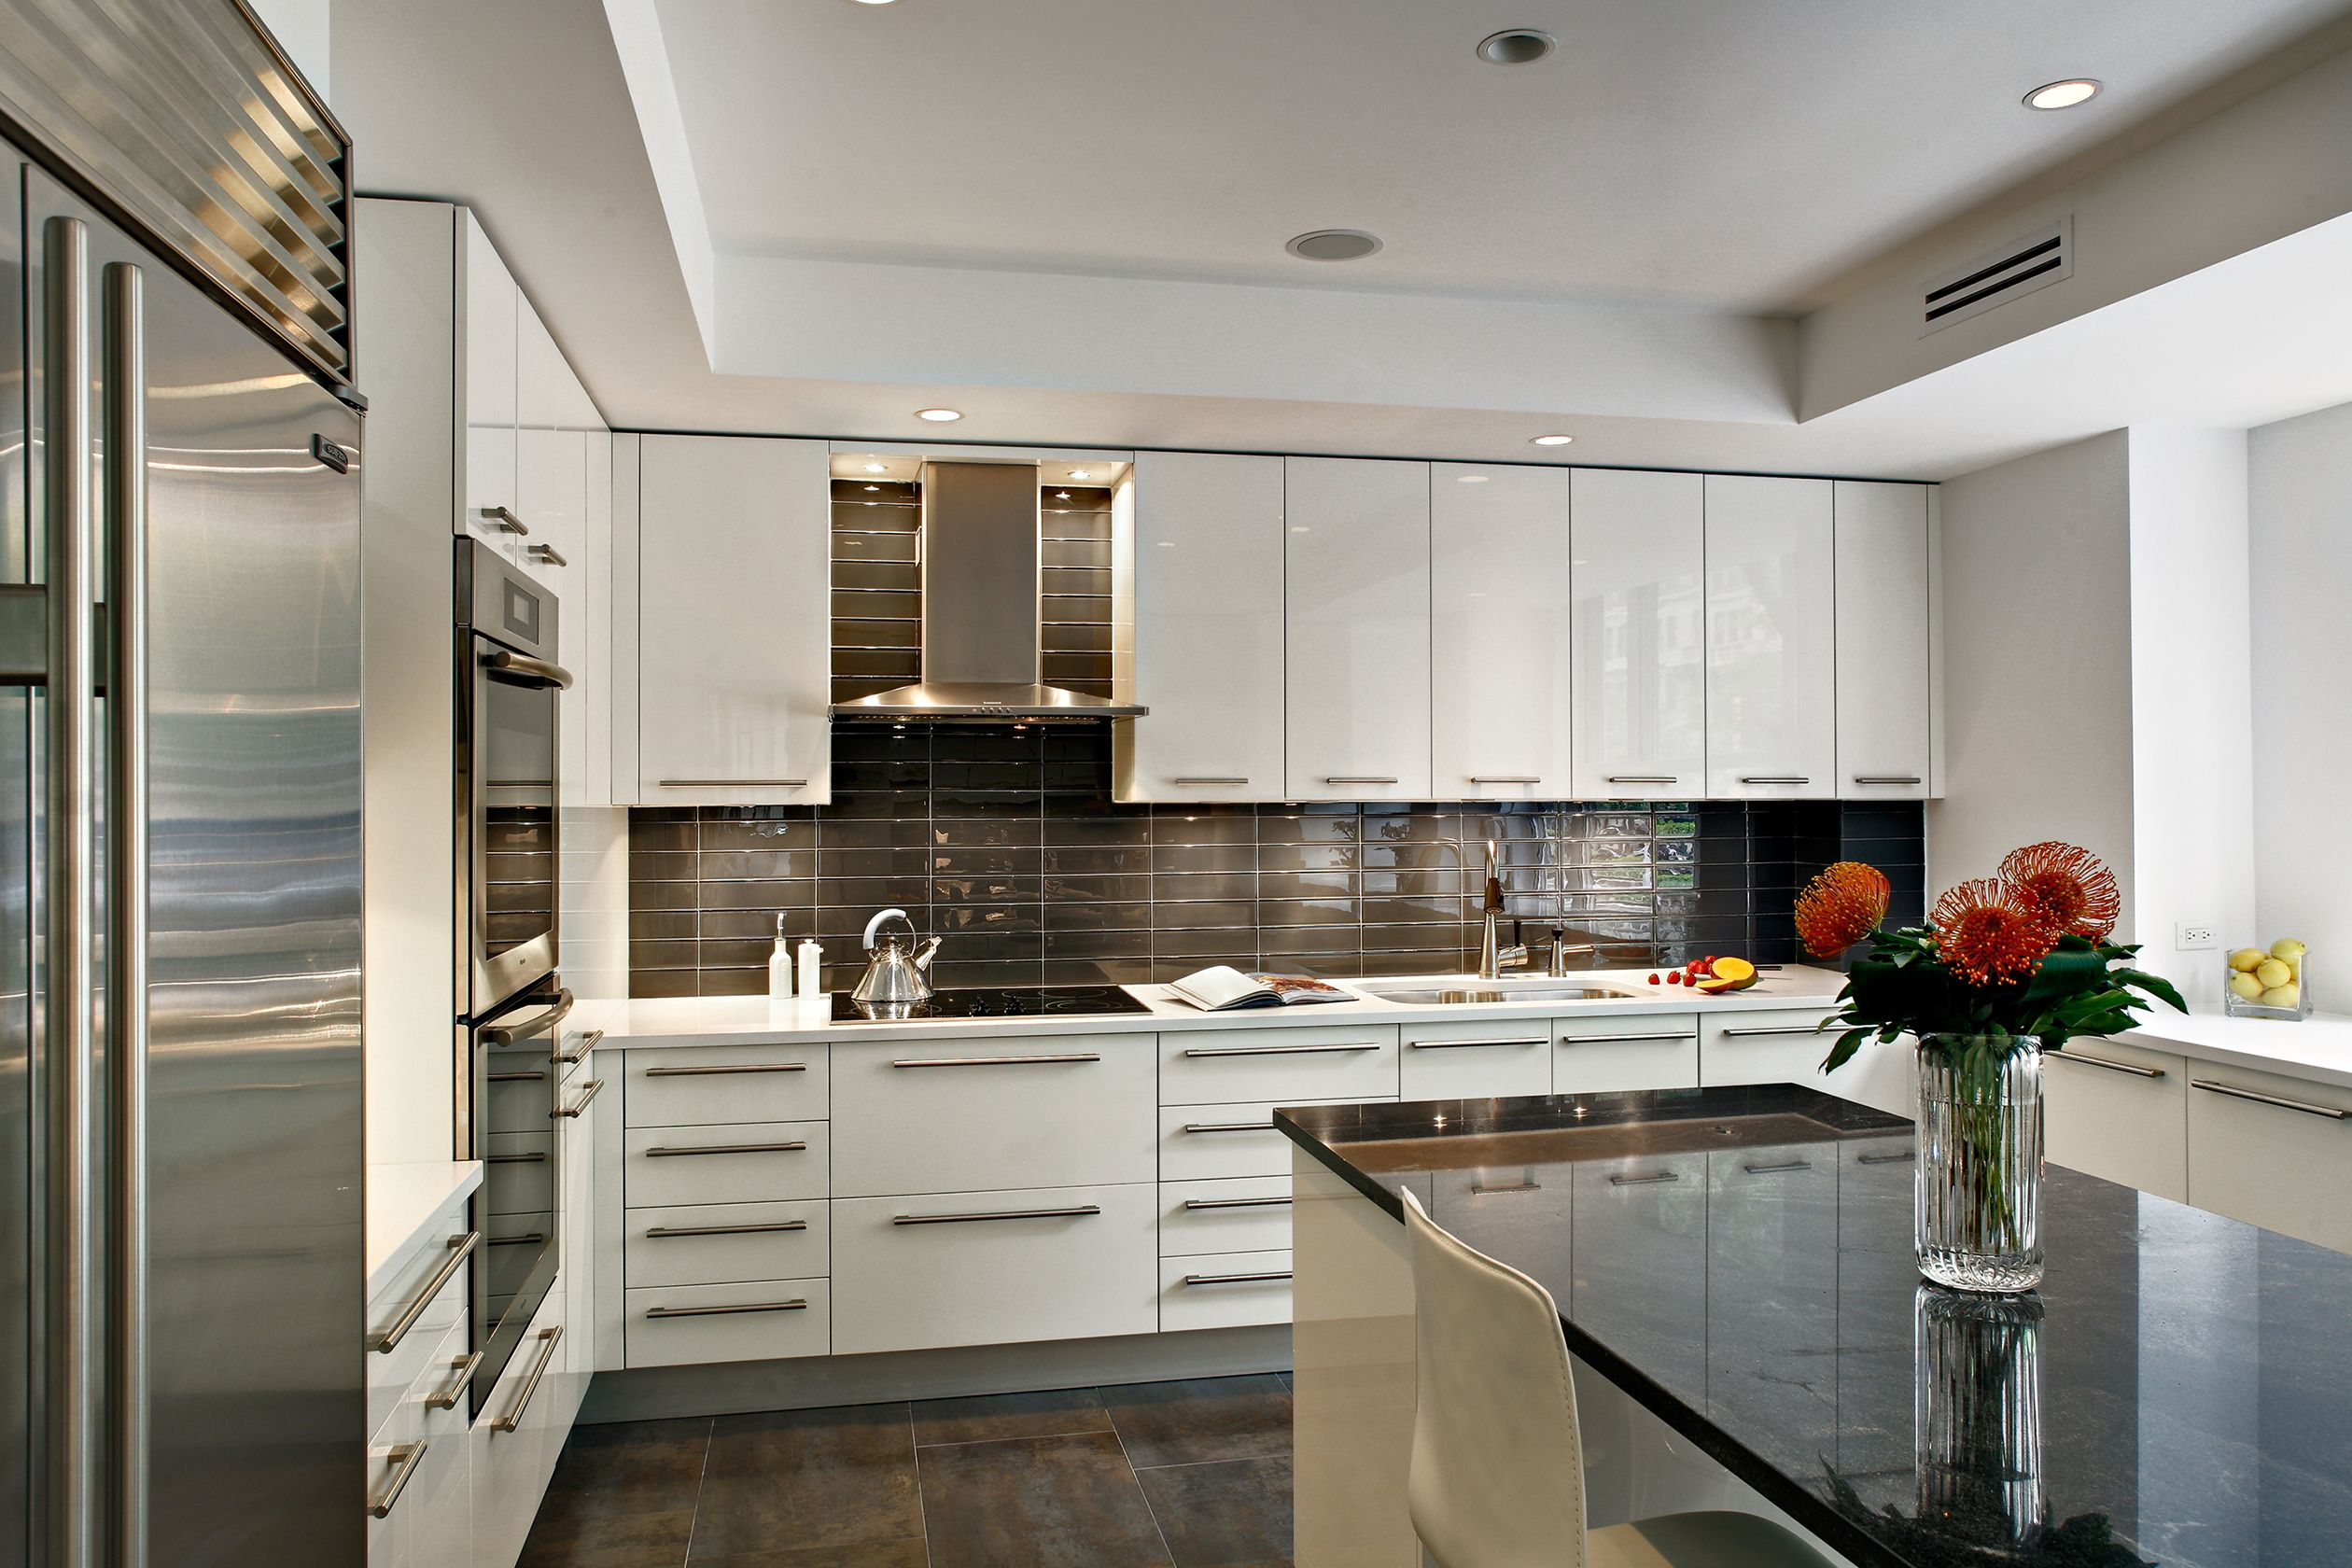 custom kitchen design - contemporary white high-gloss lacquer